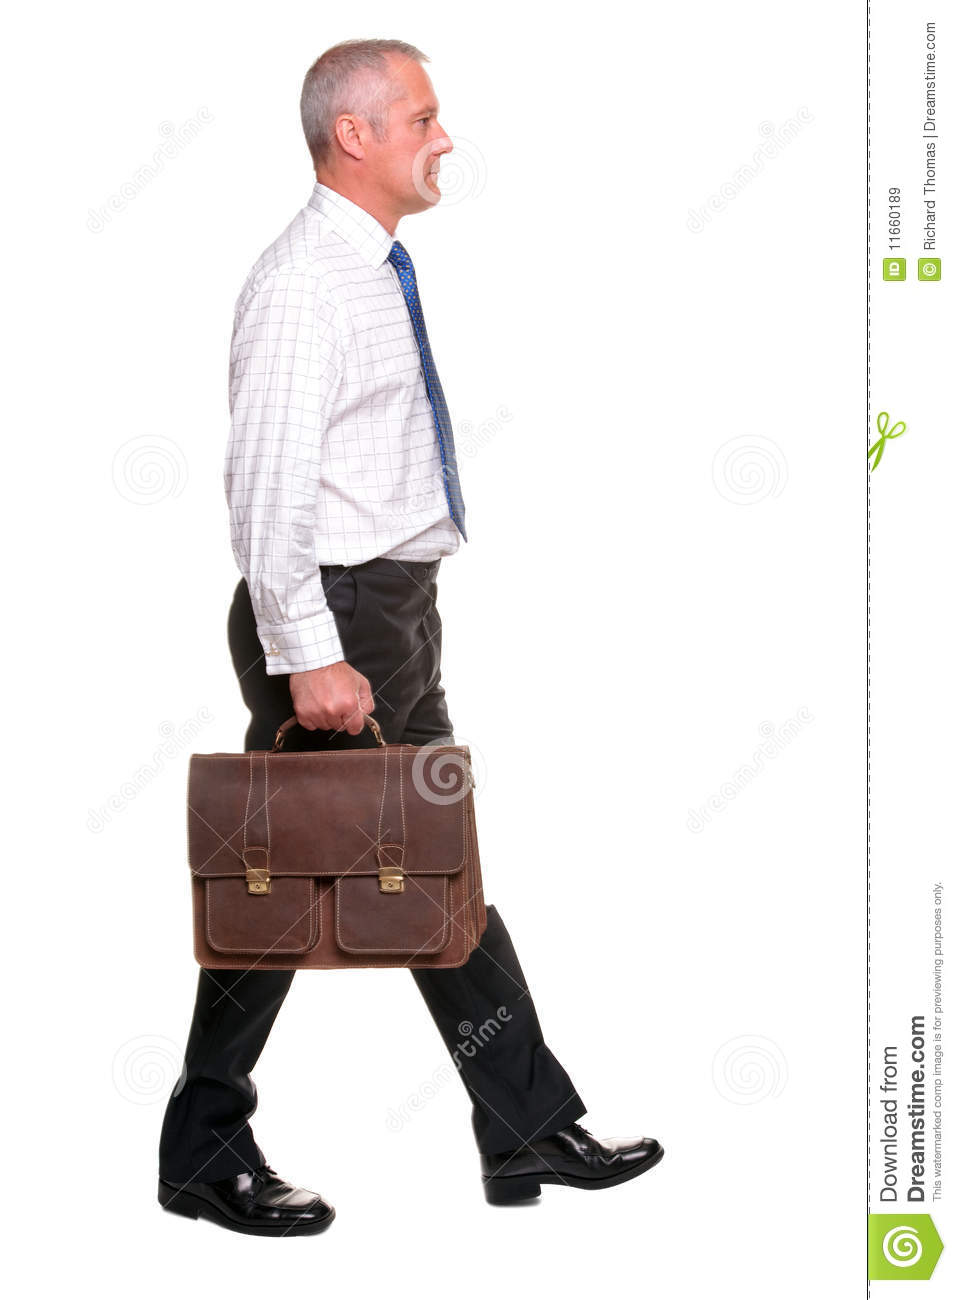 Mature Businesman Walking Side View Royalty Free Stock Images  Image 11660189